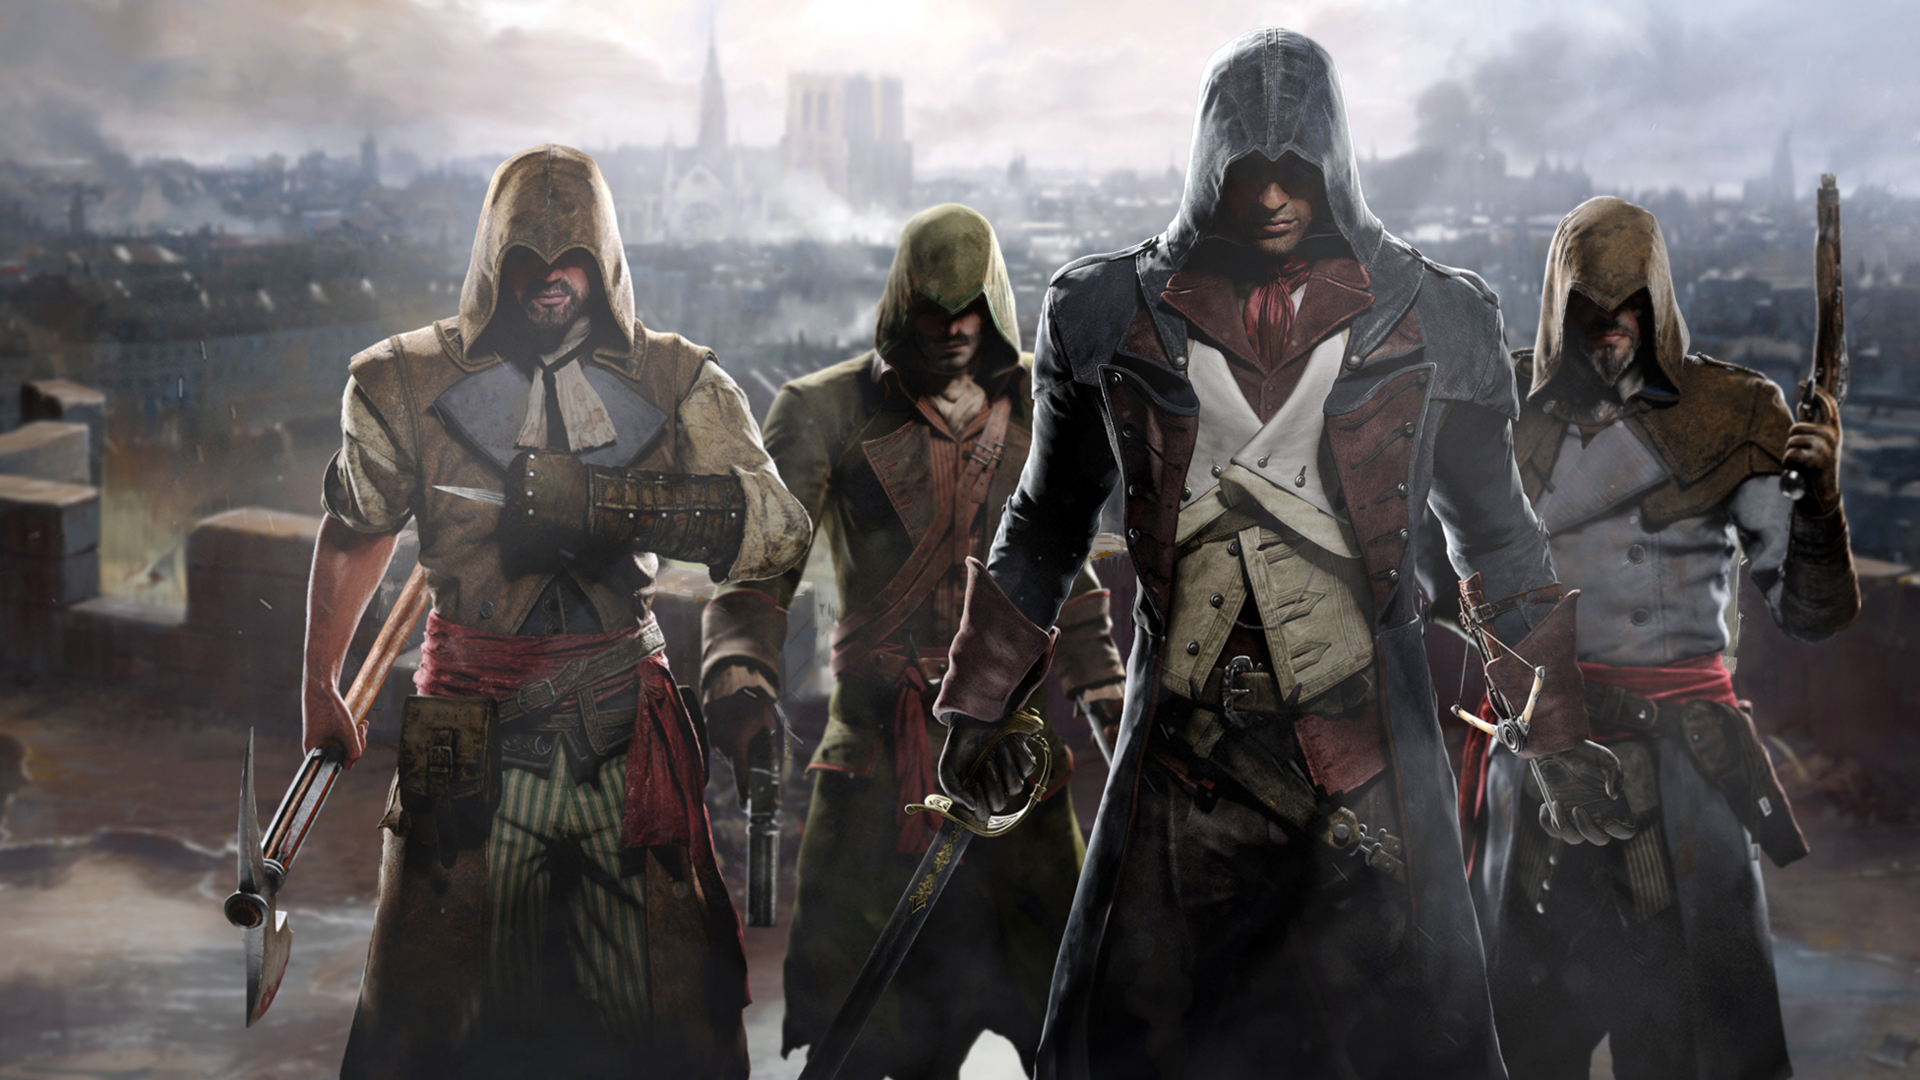 Free assassins creed unity wallpaper 40776 1920x1080 px free assassins creed unity wallpaper 40776 voltagebd Gallery